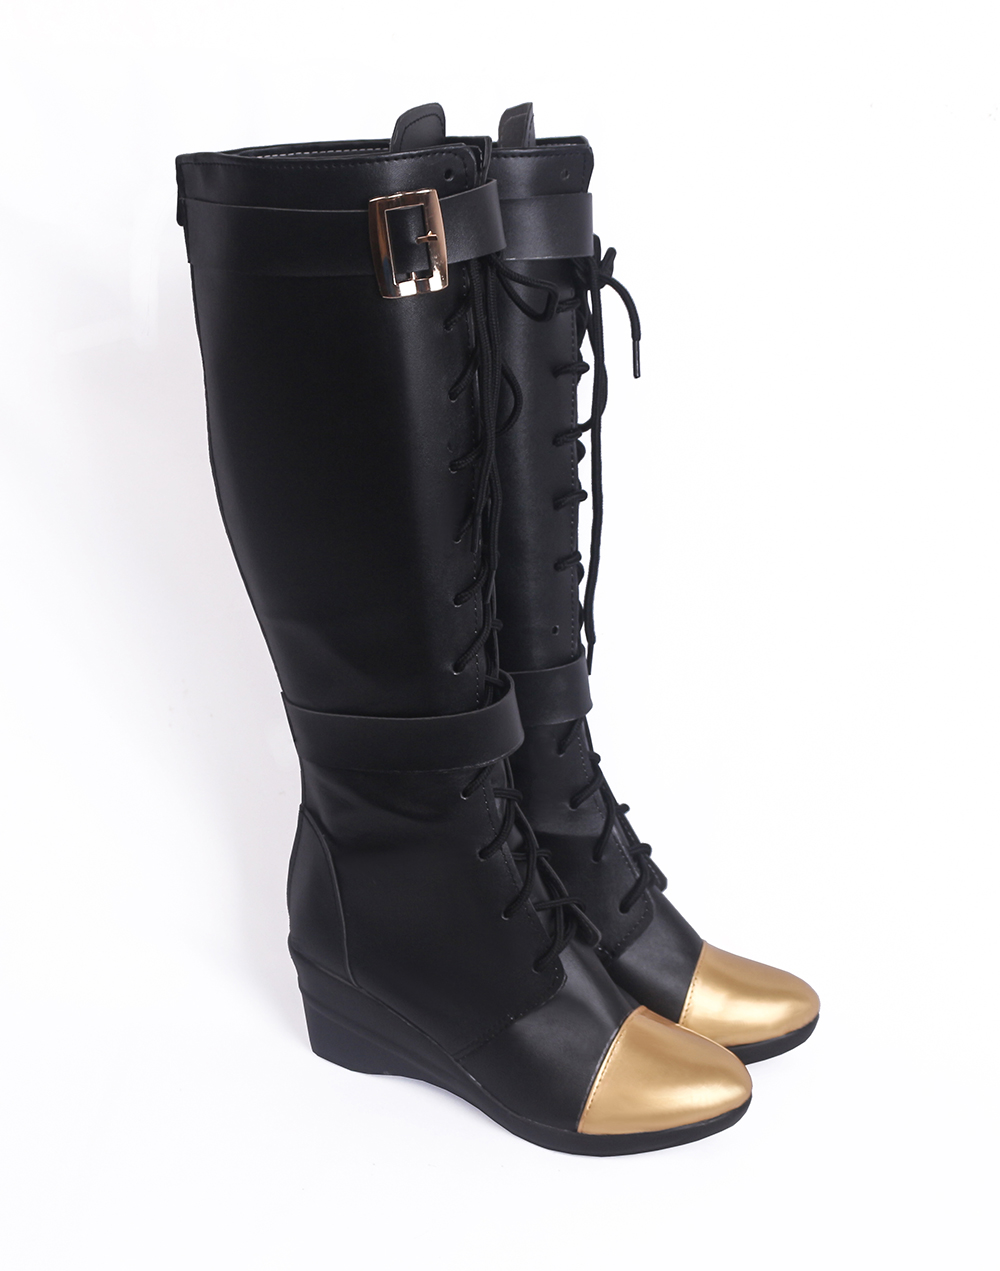 LOL Caitlyn the Sheriff of Piltover Cosplay Boots Shoes (3)